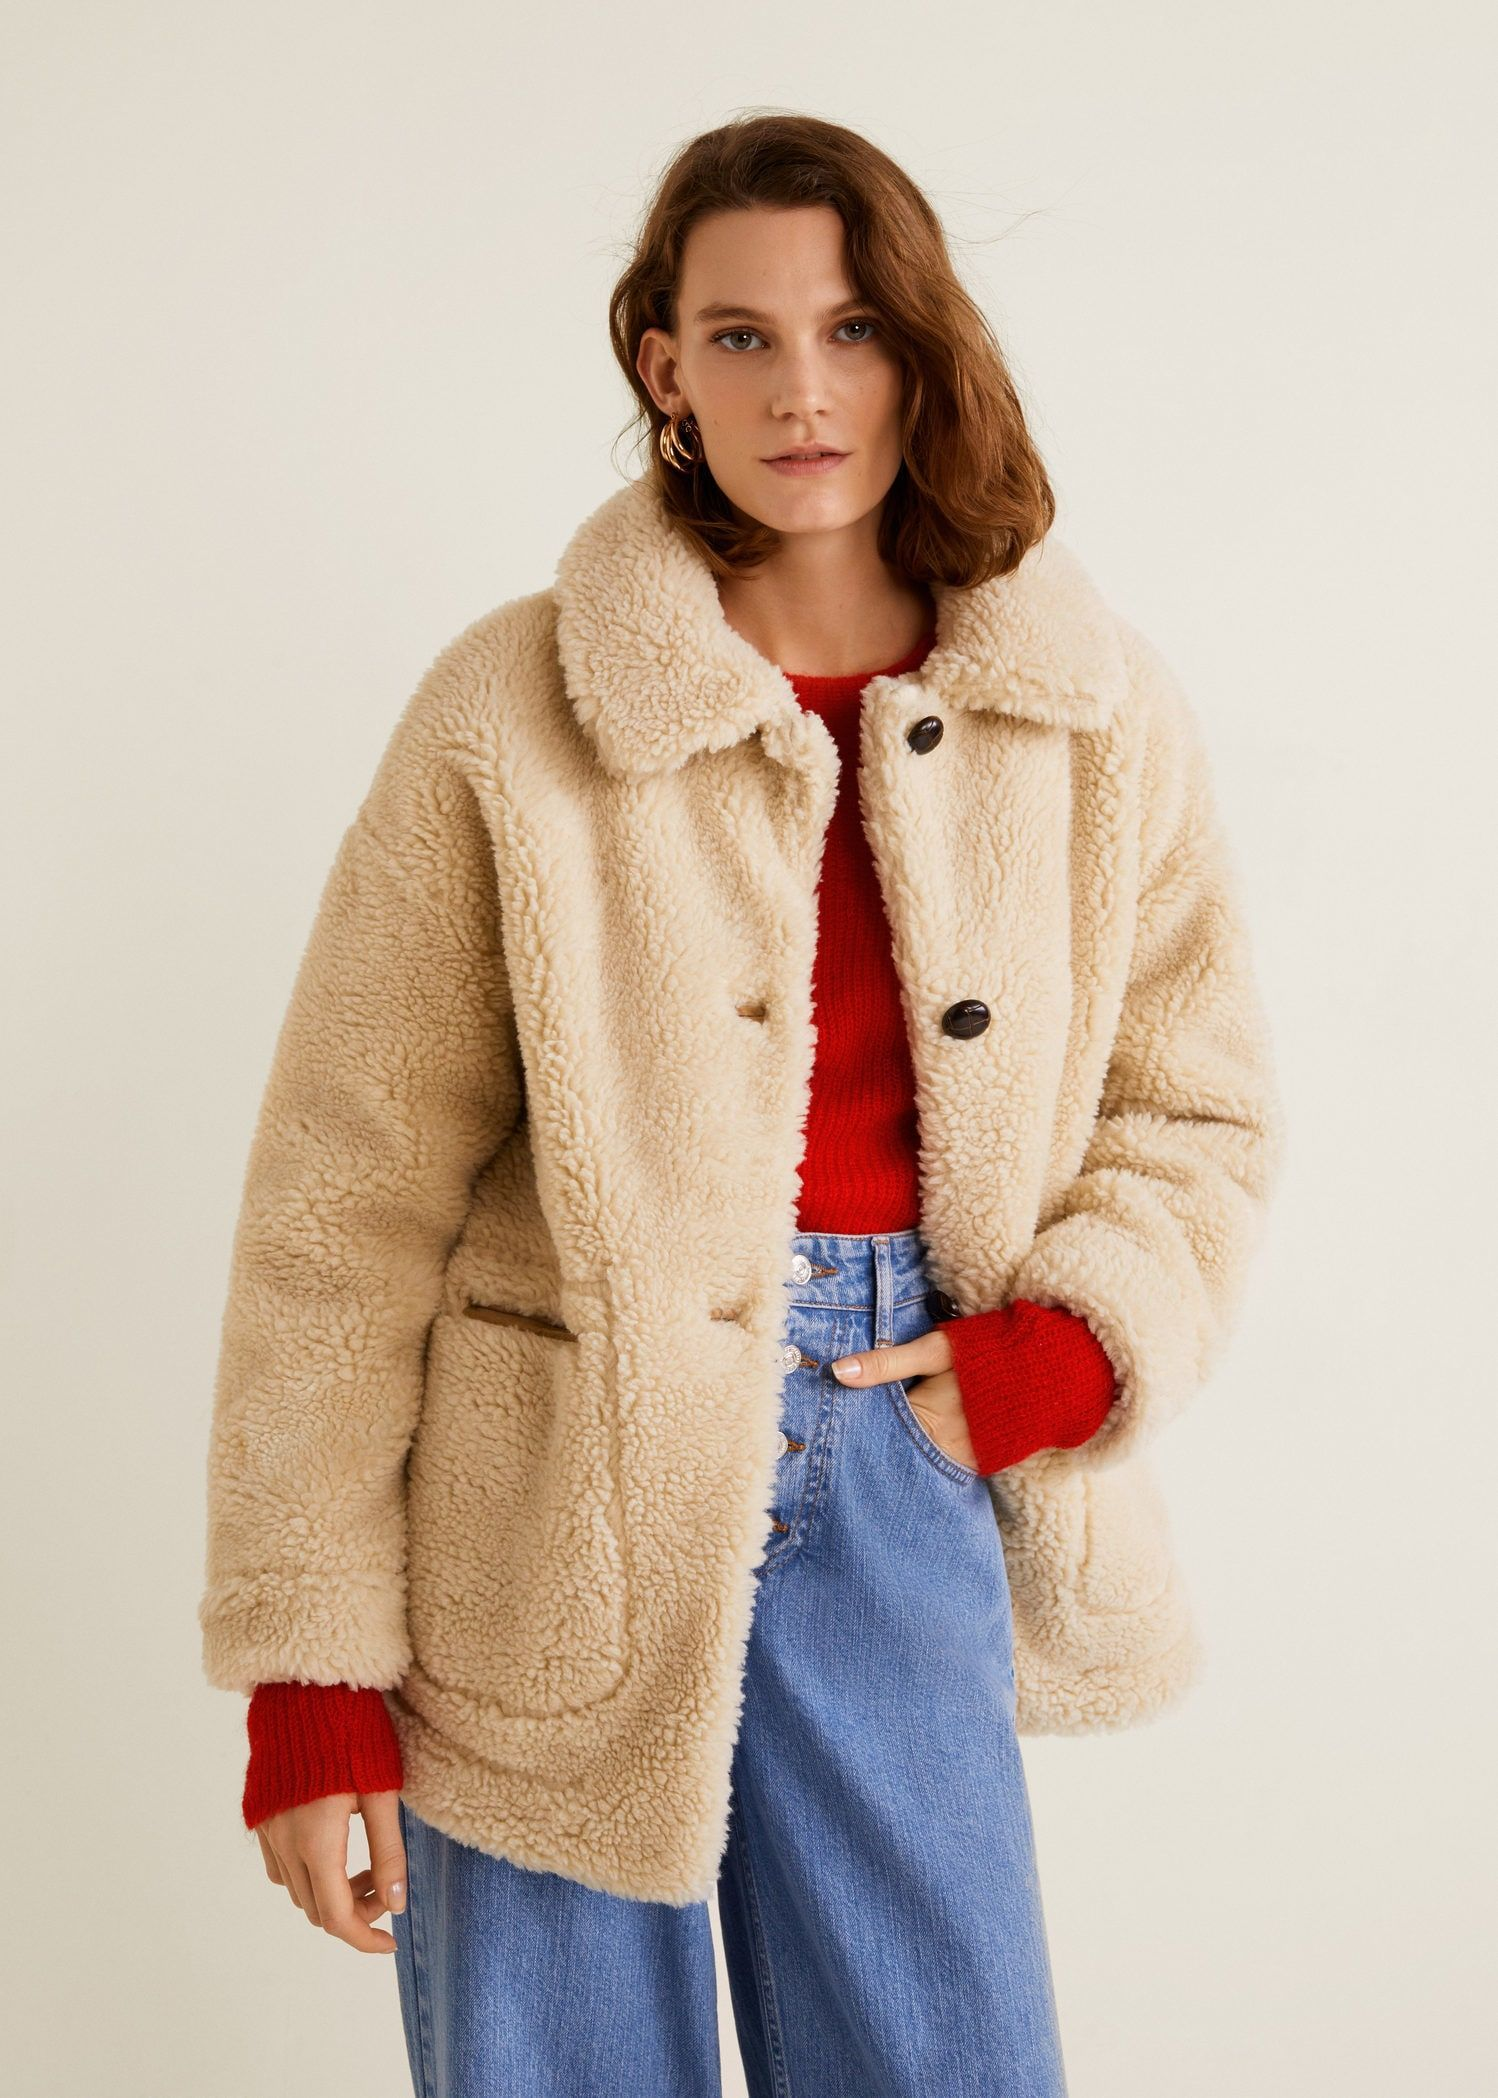 db3b9996b0d43 No Surprise — Mango Is Bringing Us Some Seriously Cool Outerwear  refinery29